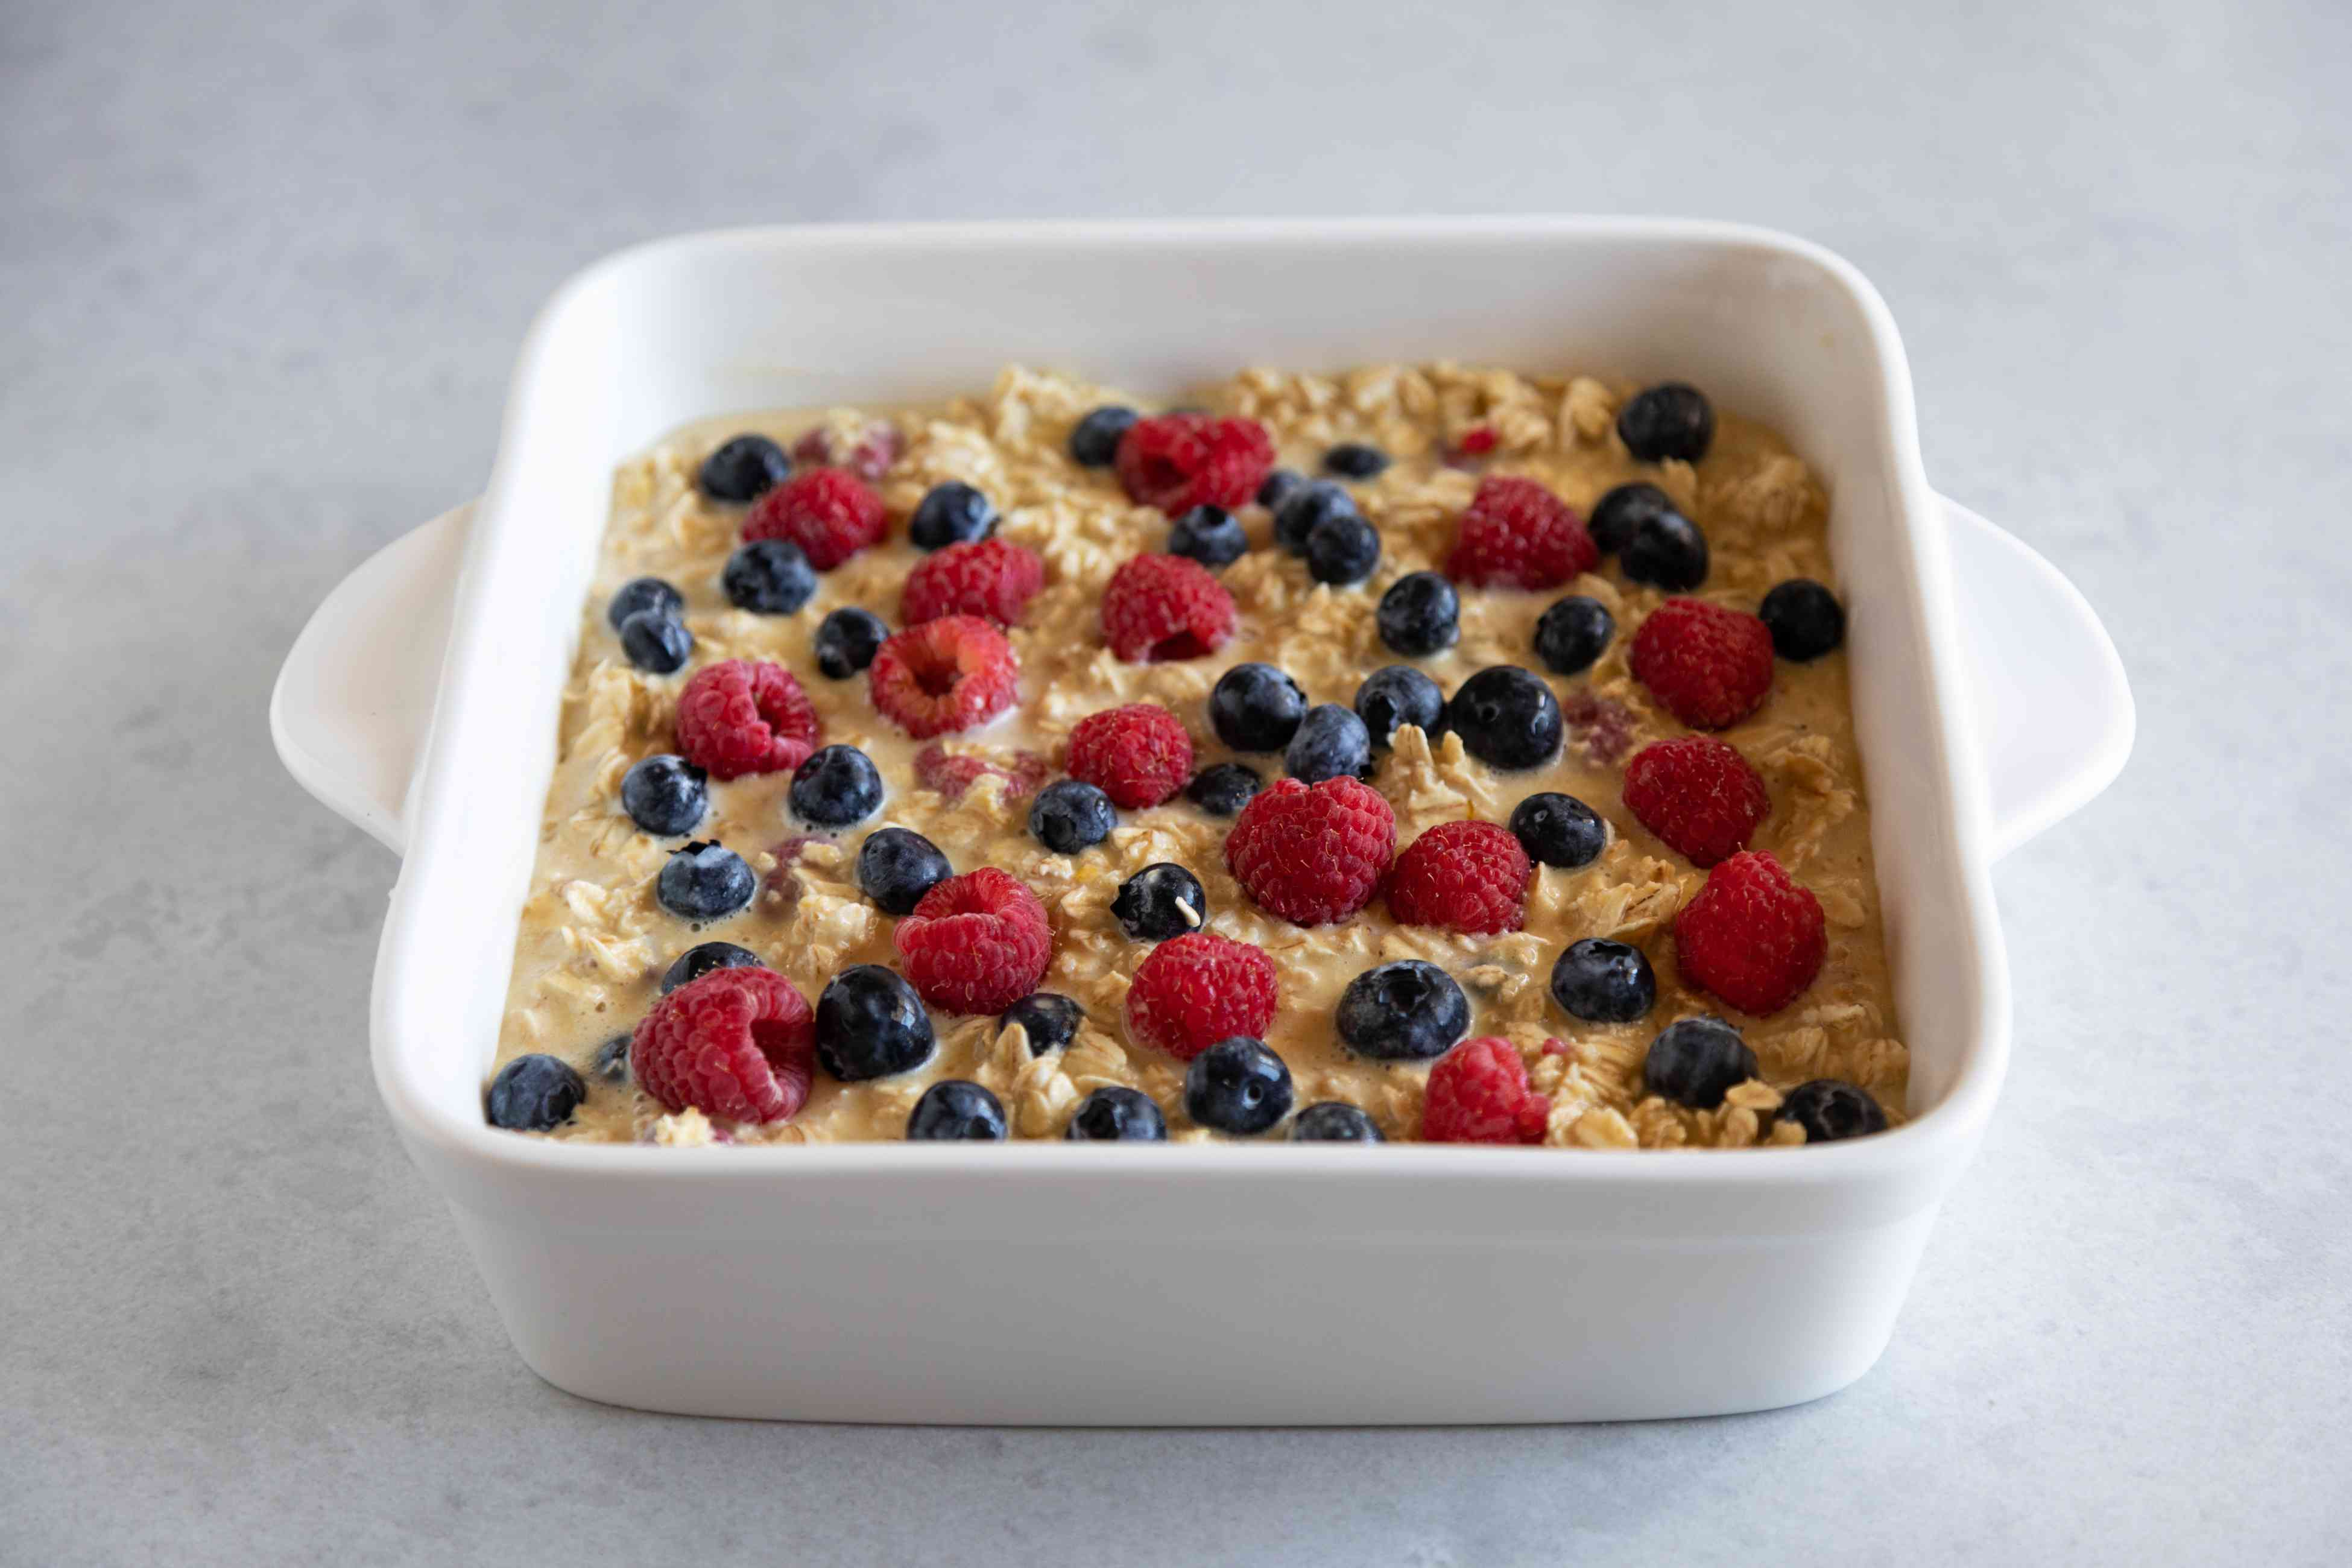 Mixed Berry Baked Oatmeal in a ceramic baking dish and ready to be baked.